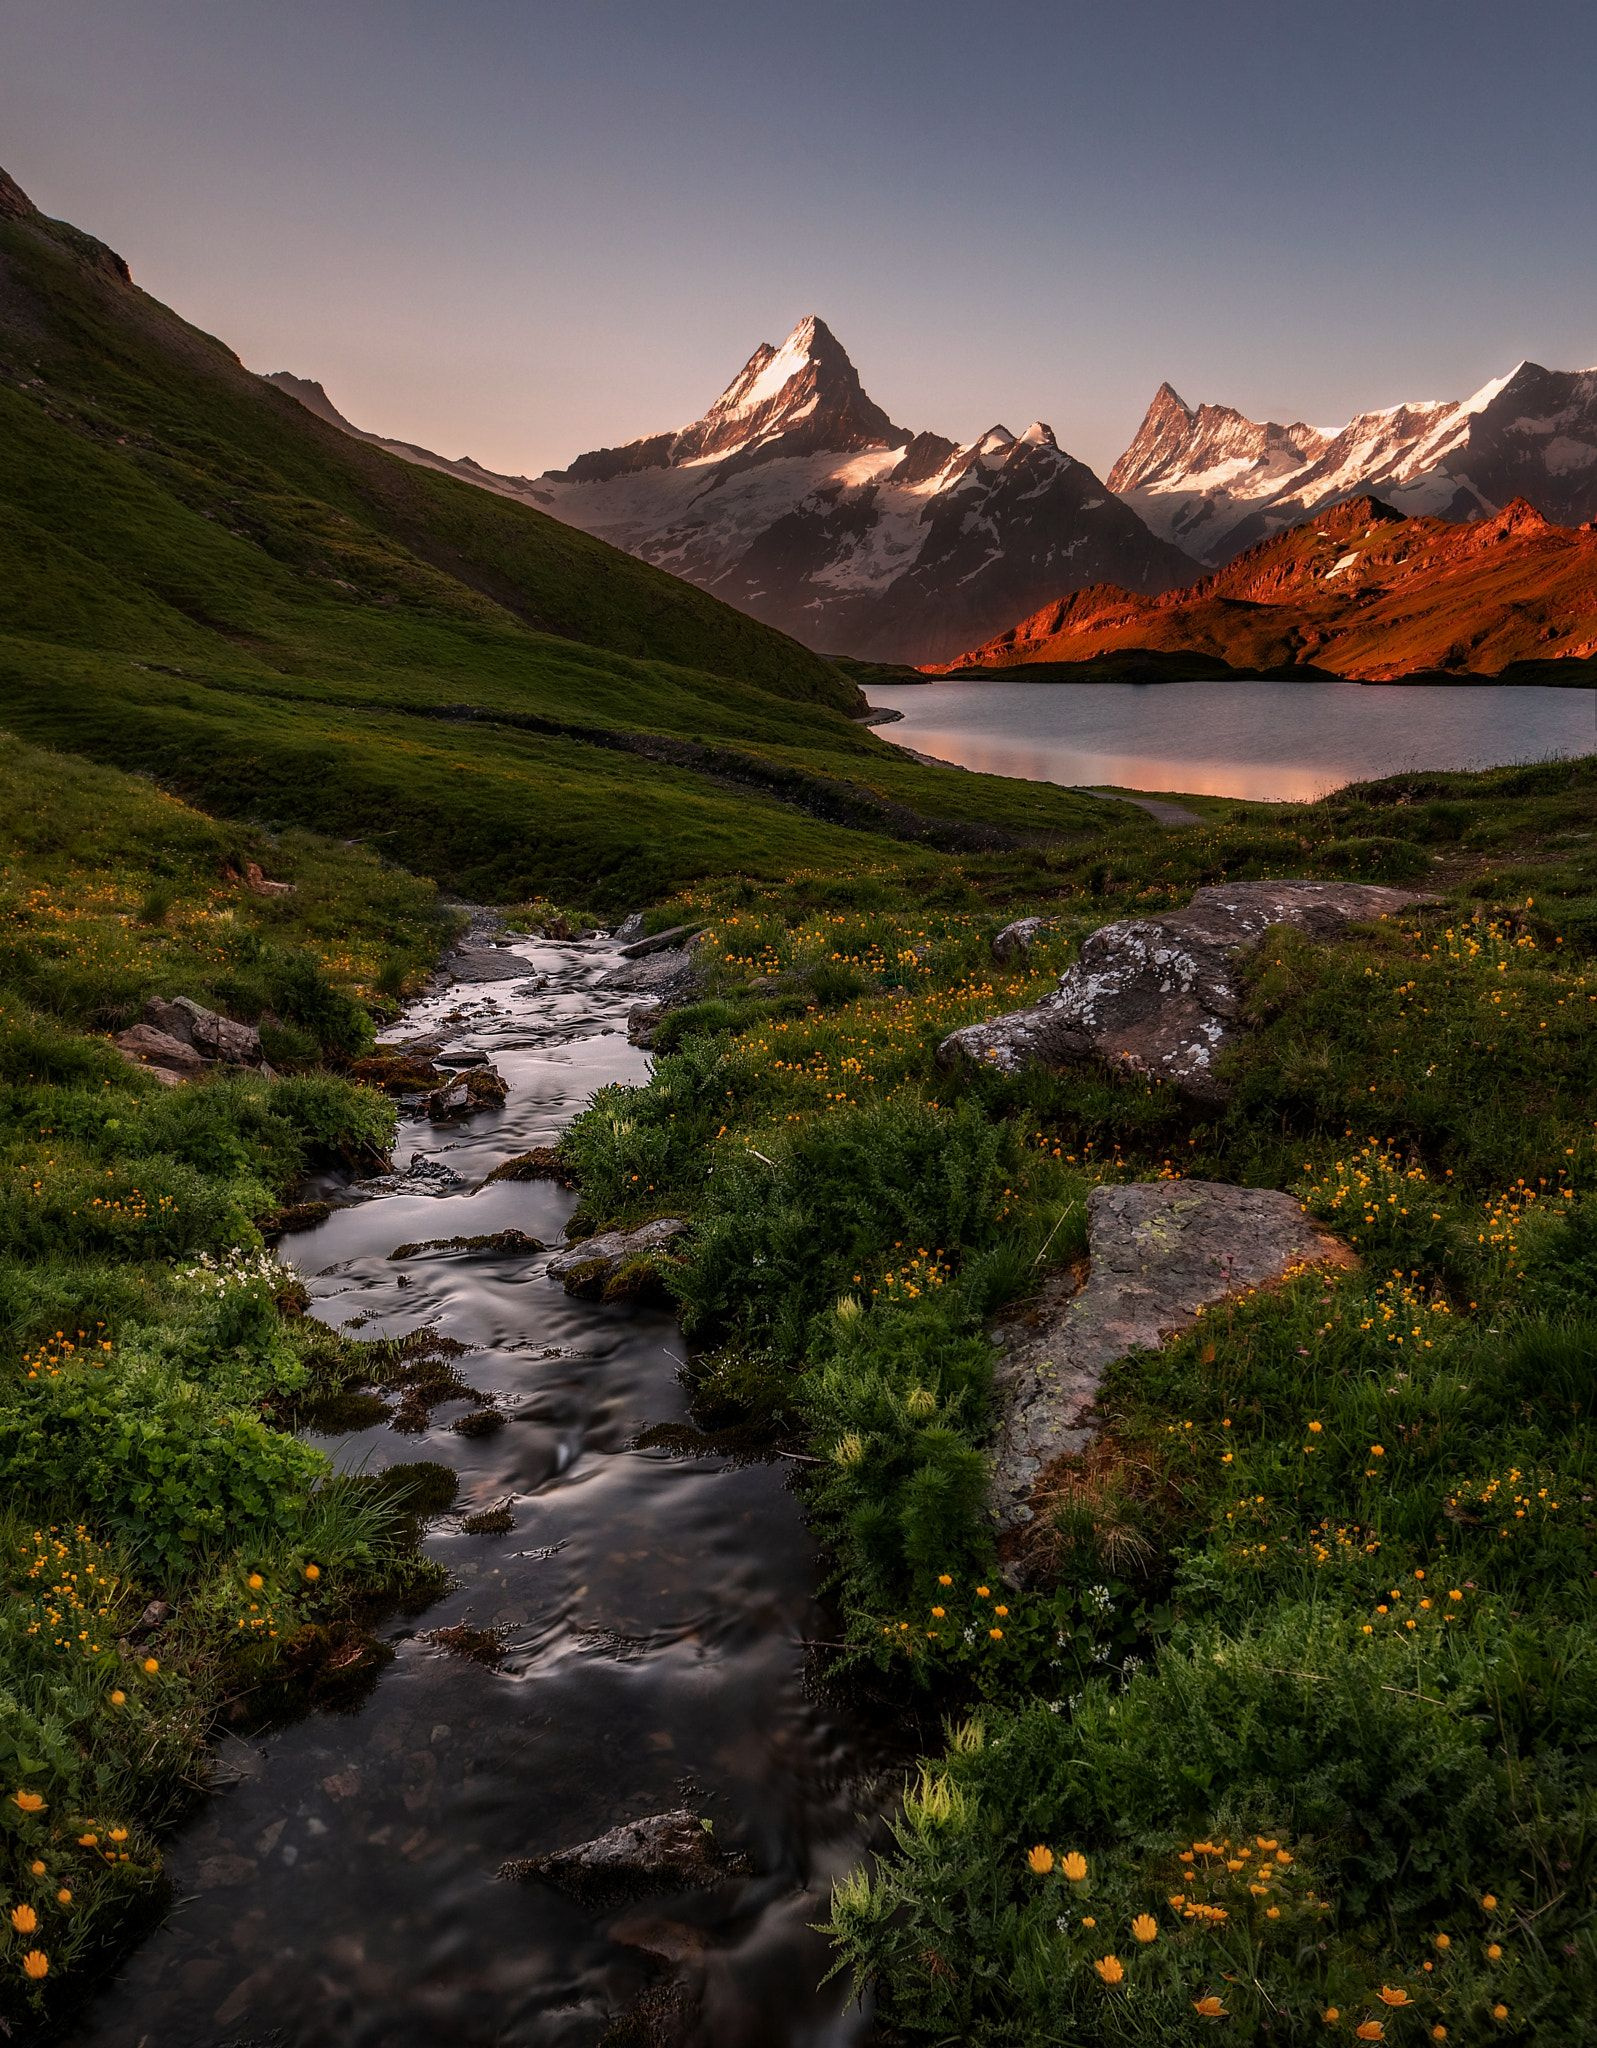 Untitled Bachalpsee Nature Photography Landscape Travel